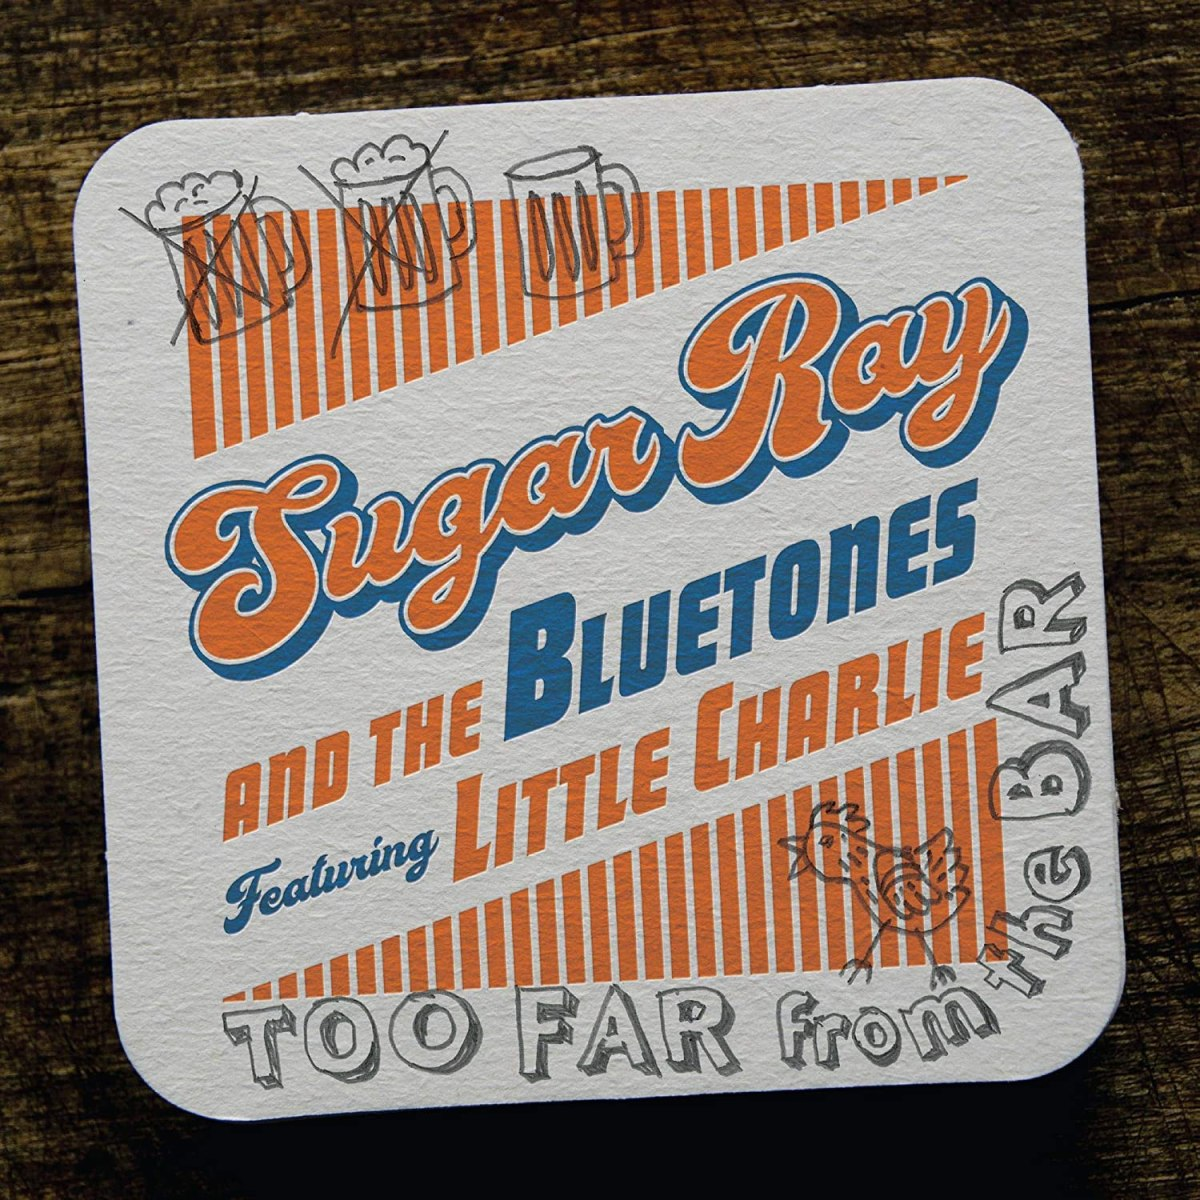 Sugar Ray And The Bluetones Featuring Little Charlie Baty Too Far From The Bar